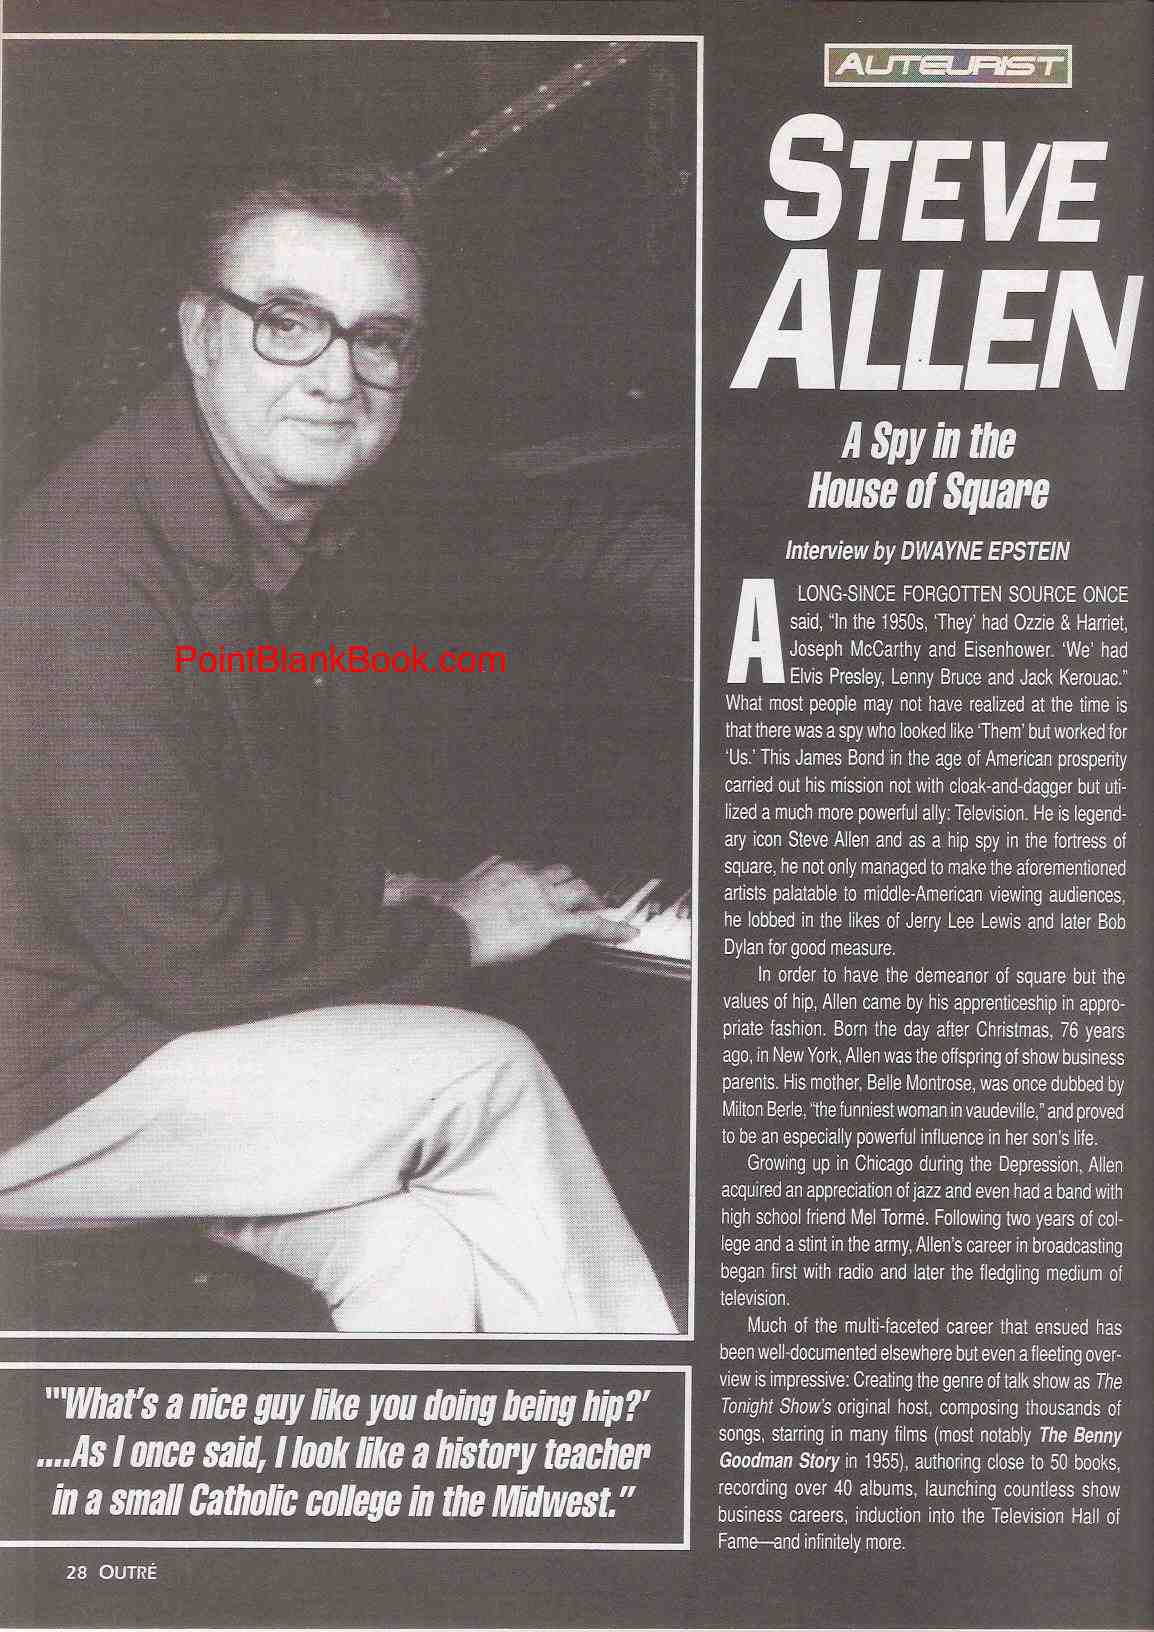 Steve Allen interview, page 1